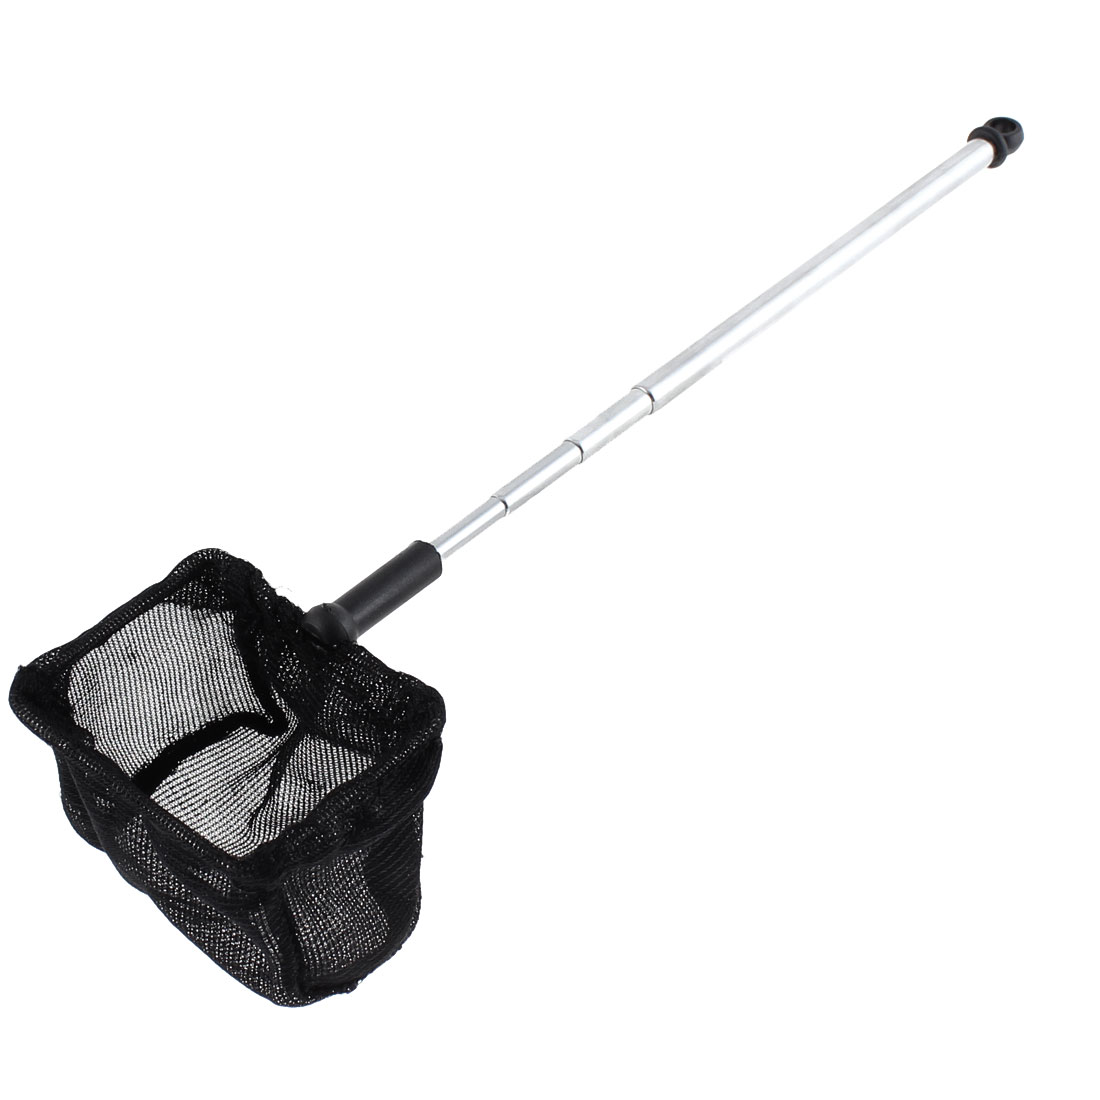 Telescoping Metal Pole Handle Fishing Landing Net Tackle Tool